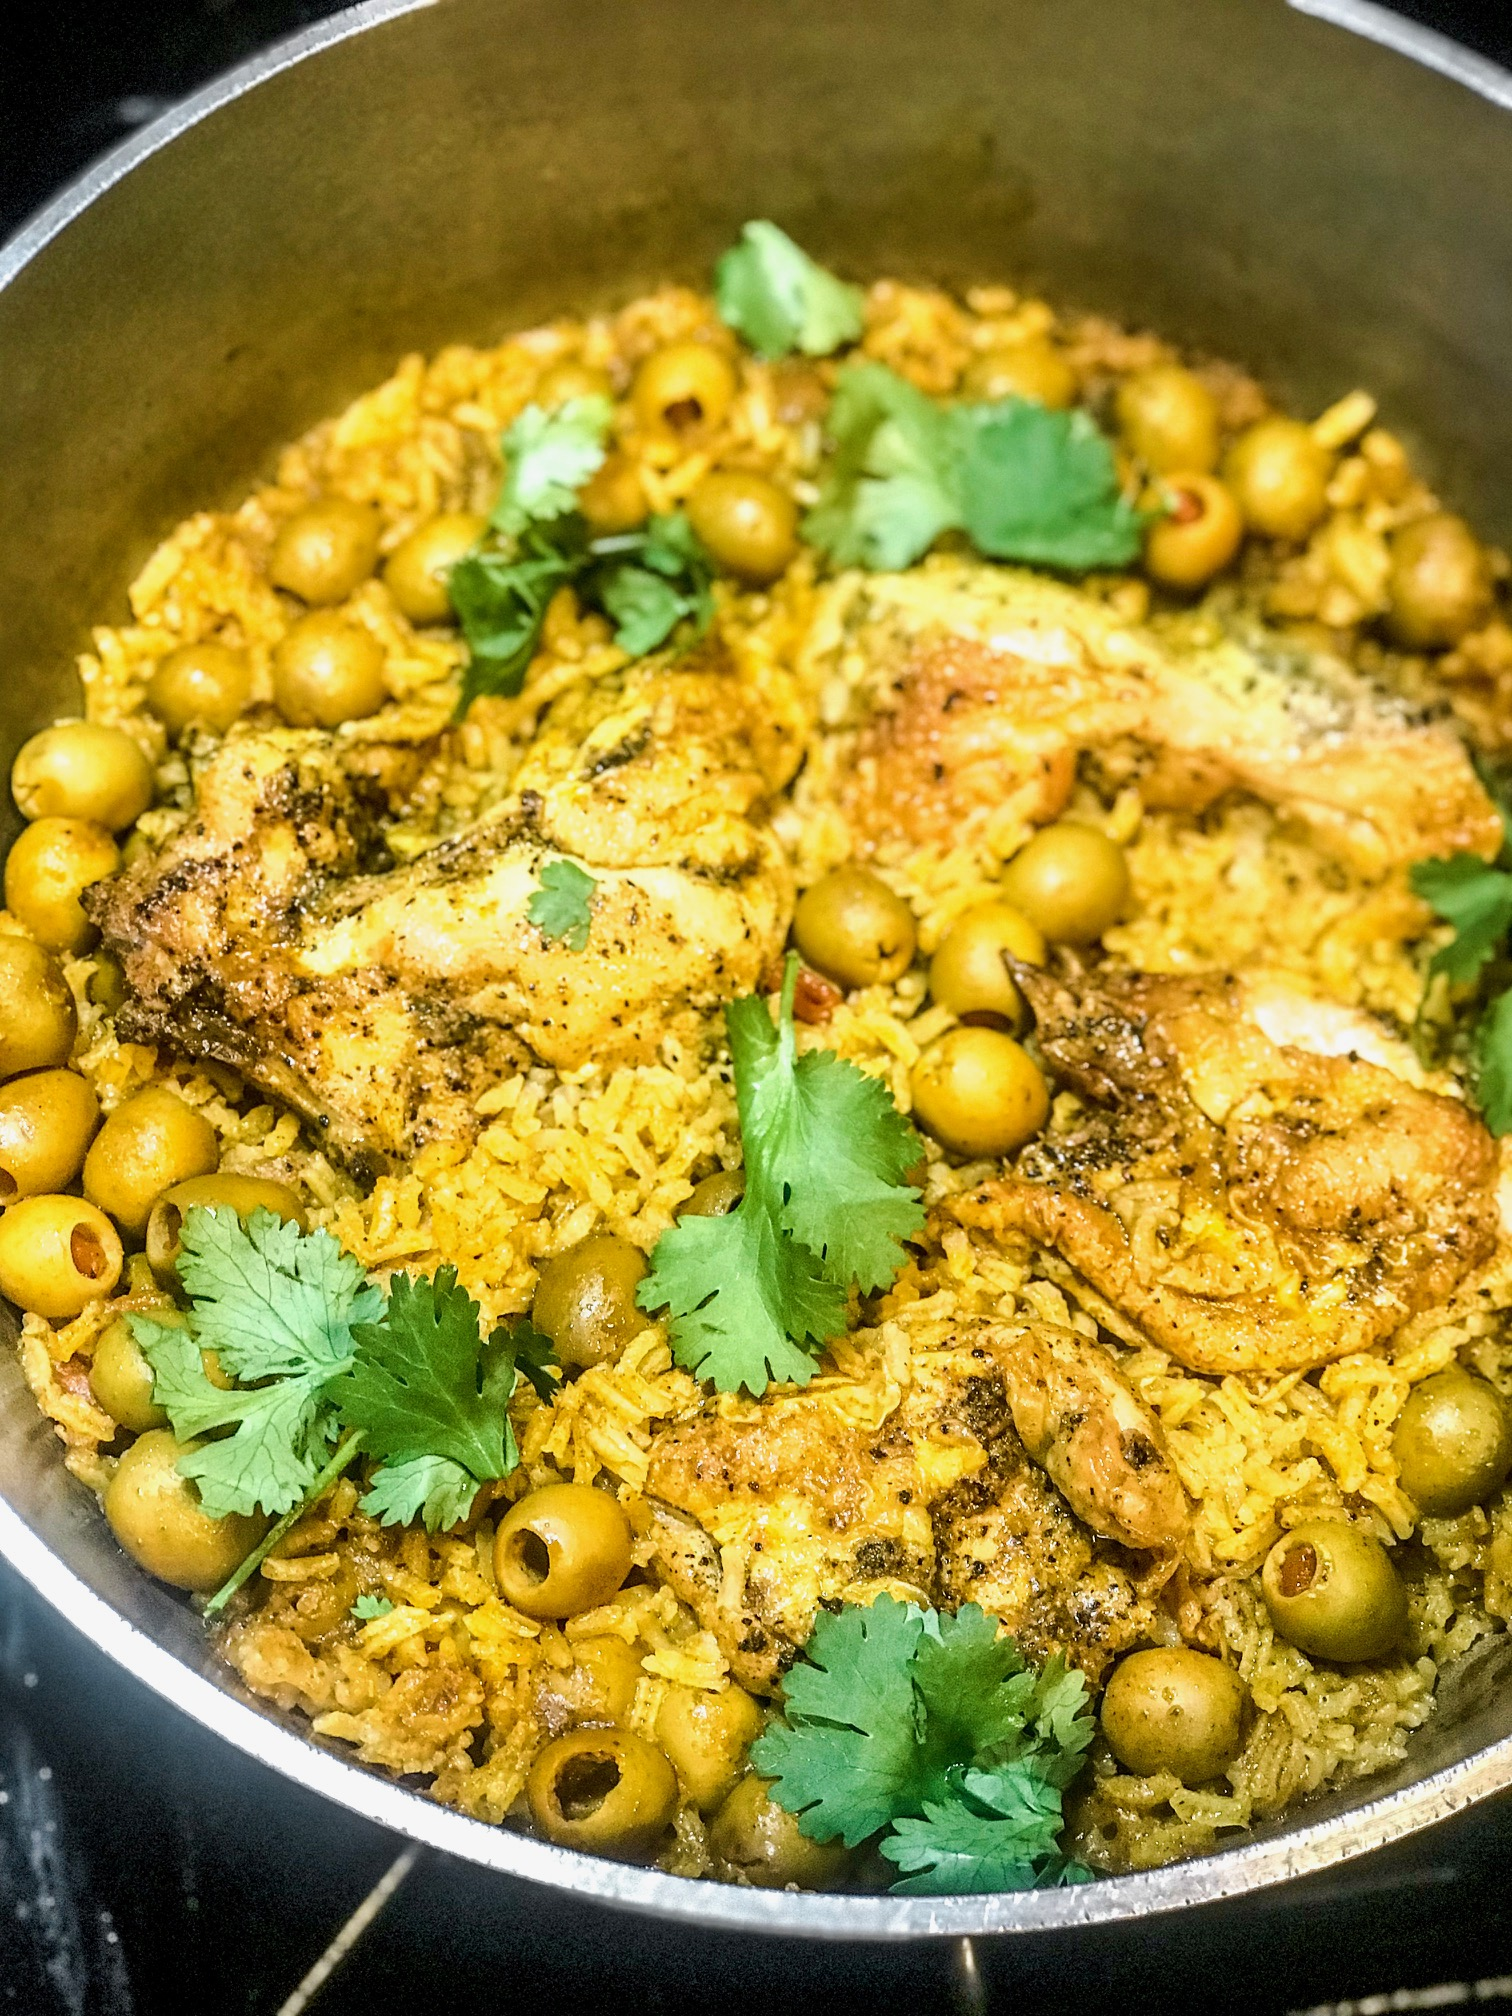 arroz con pollo finished.JPG